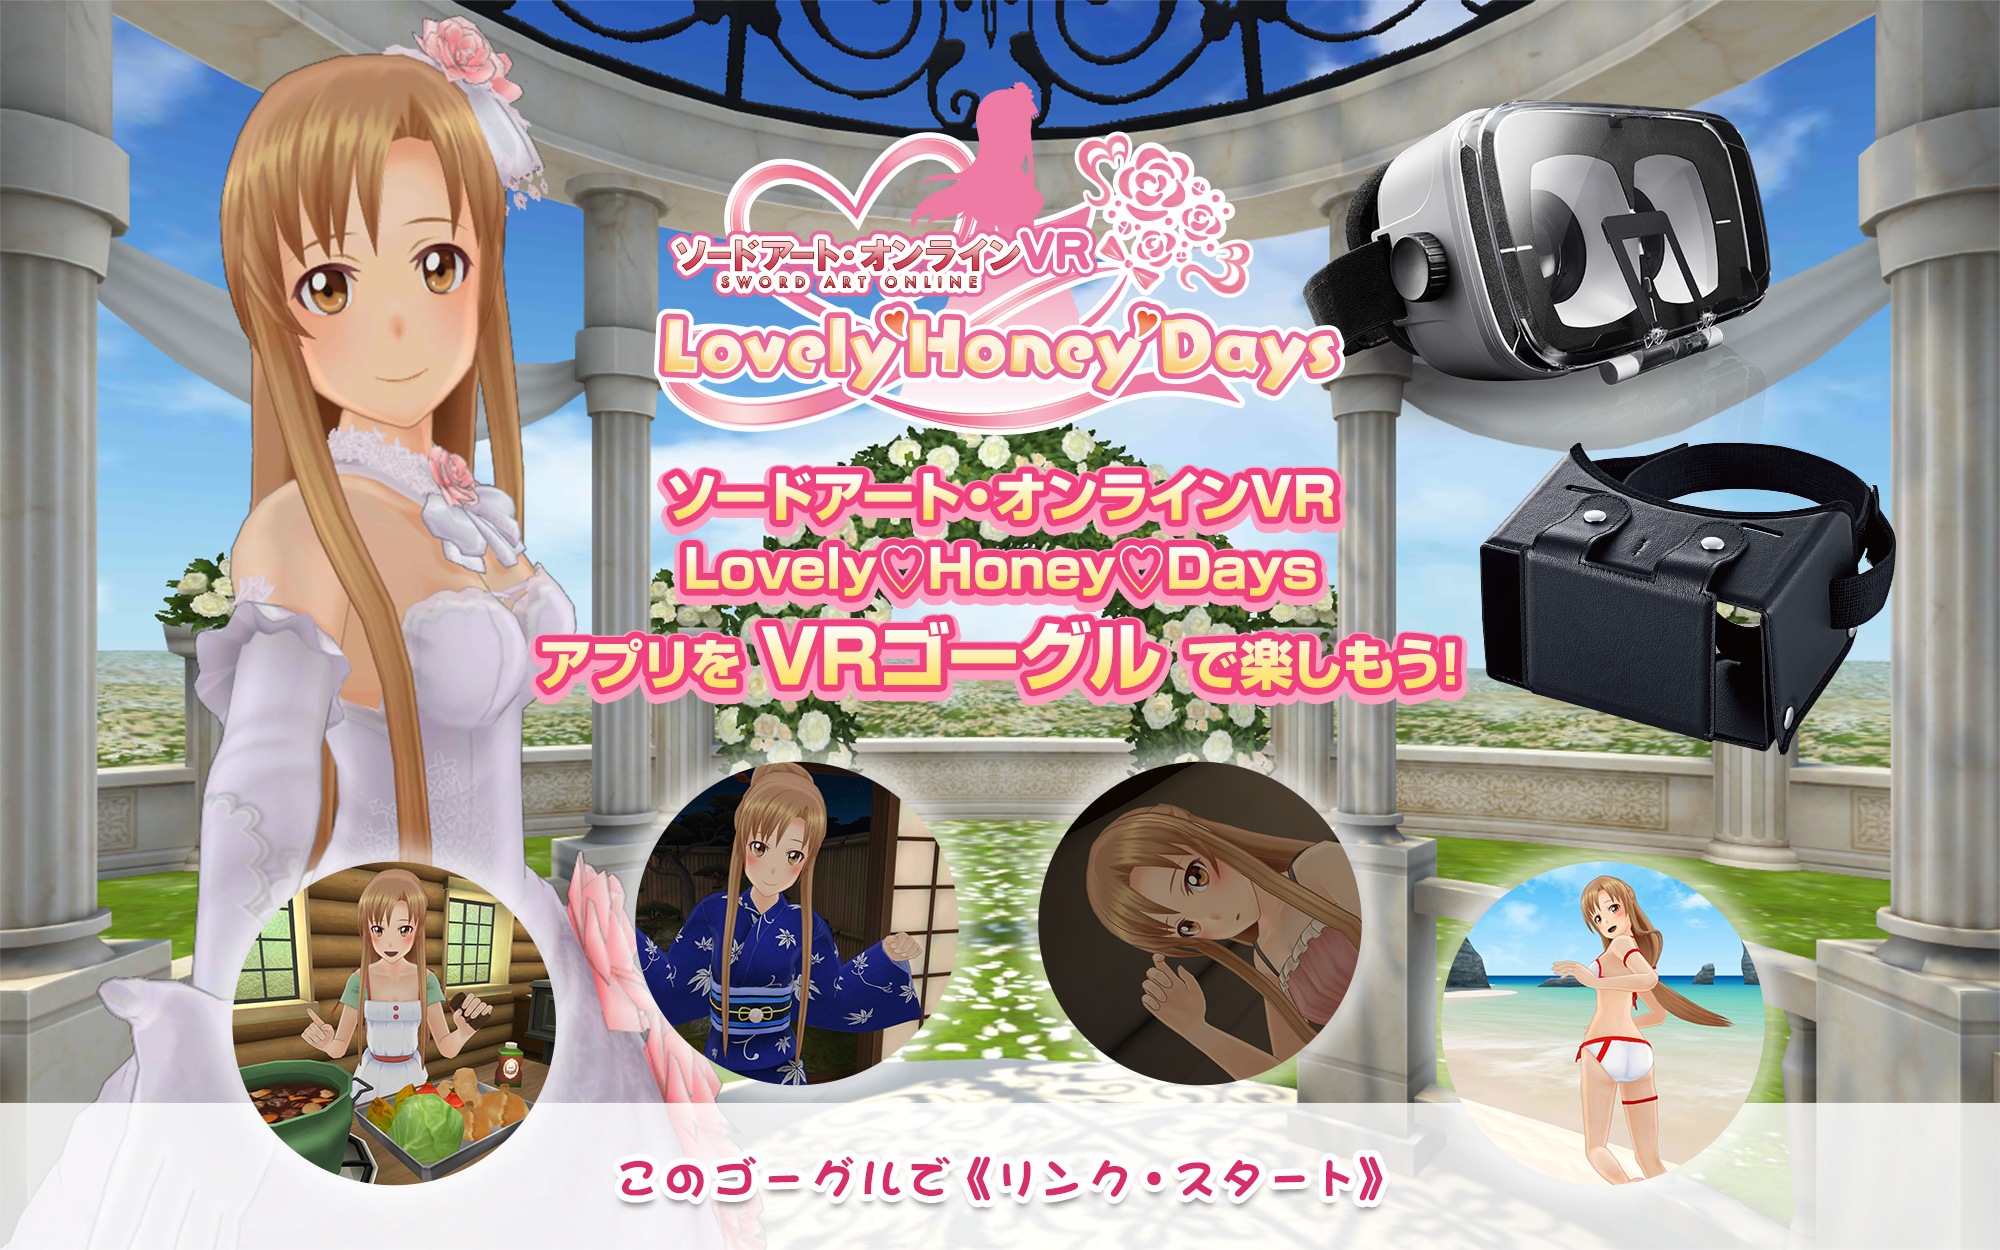 Let's enjoy SORD art online VR Lovely♡Honey♡Days application with VR goggles; with these goggles << link start >>!